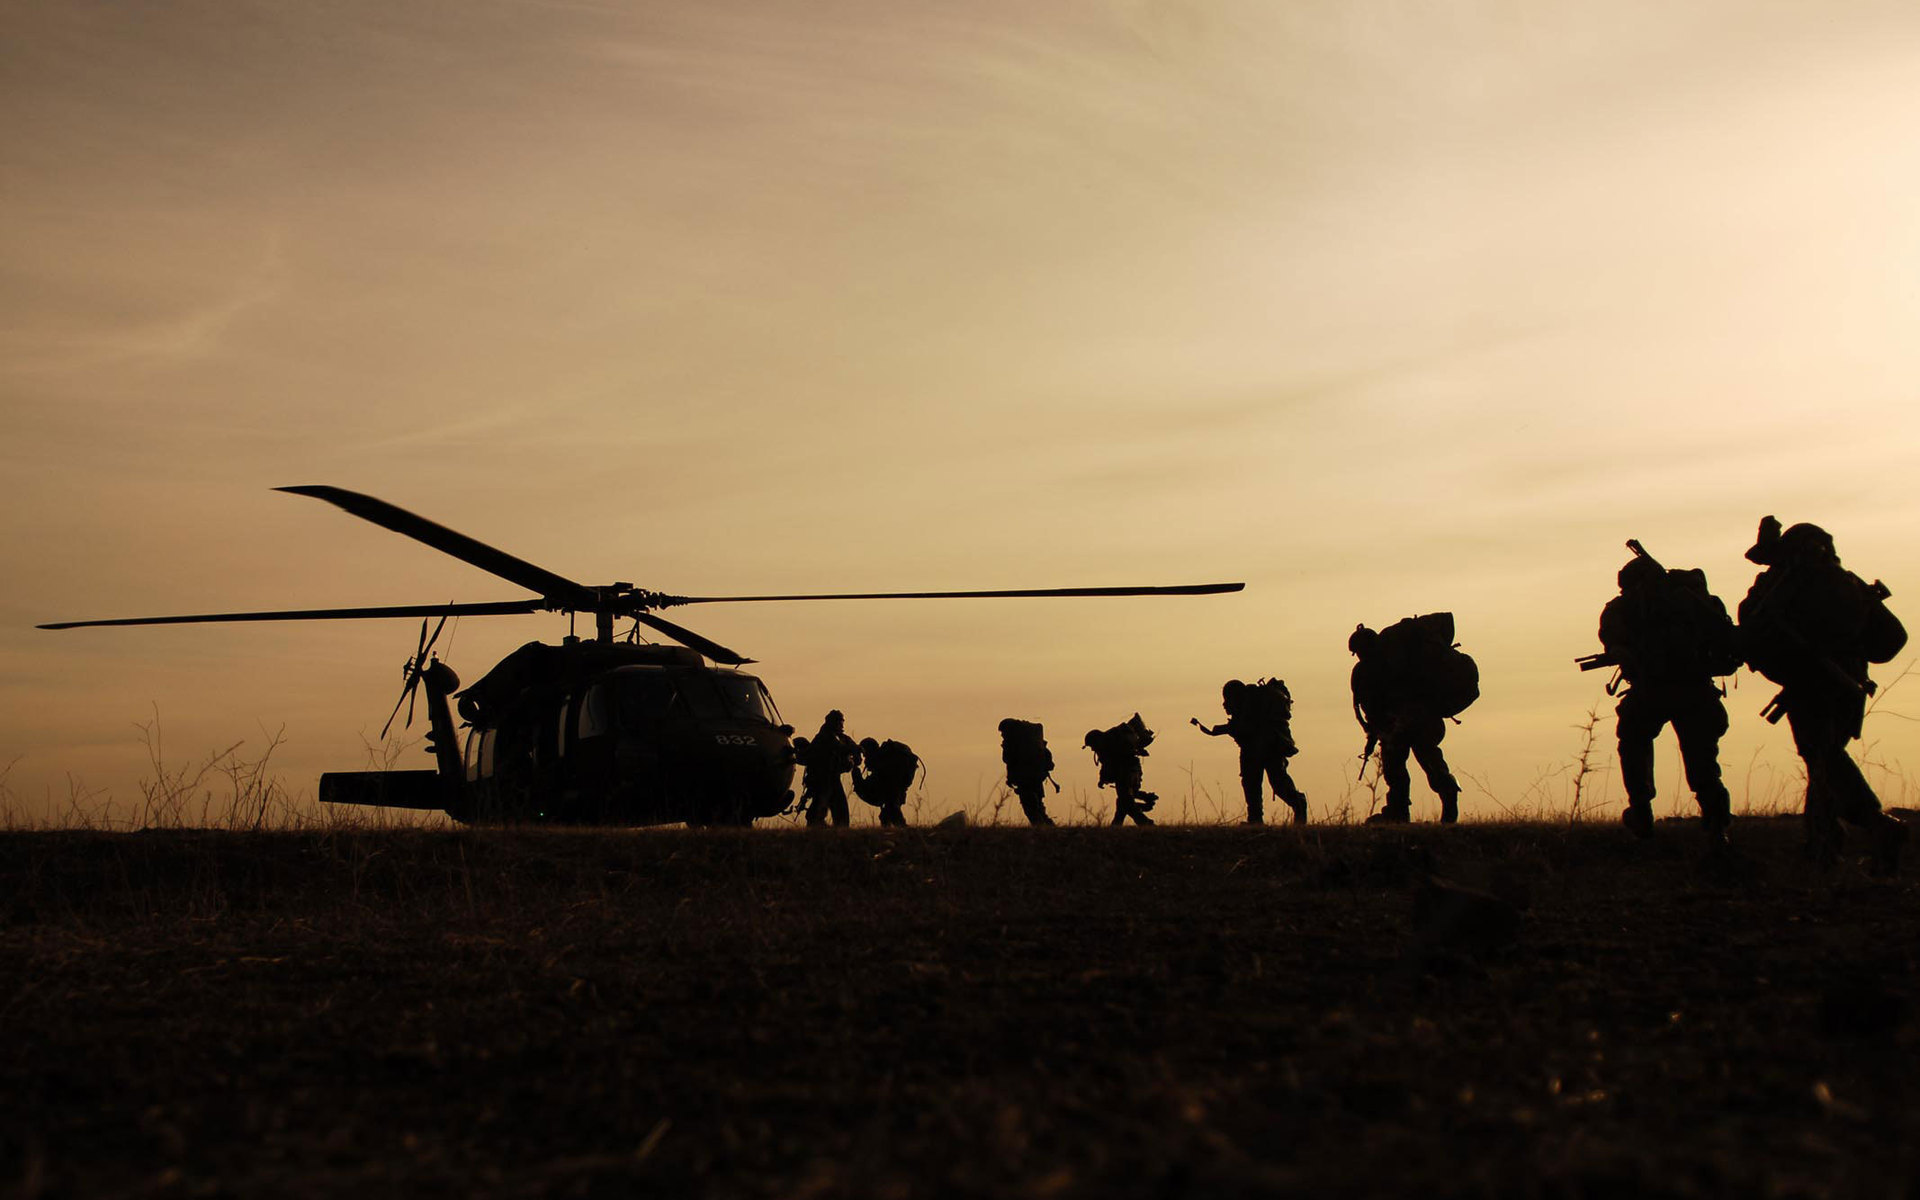 Us Army Wallpaper 9005 Hd Wallpapers in War n Army   Imagescicom 1920x1200